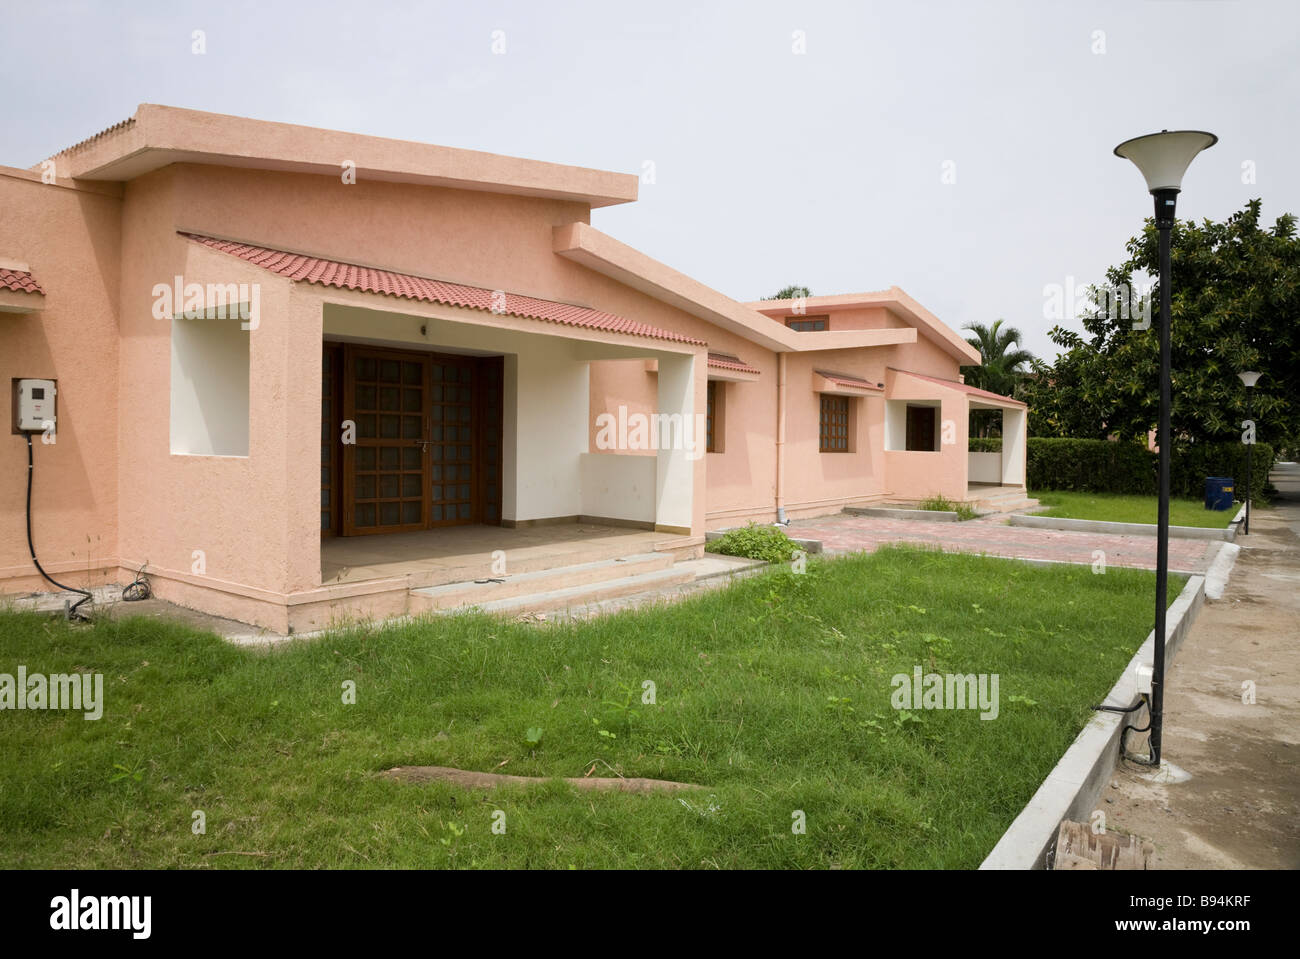 a new house which is part of a modern development of housing for professional middle class people hazira gujarat india - Modern New Houses